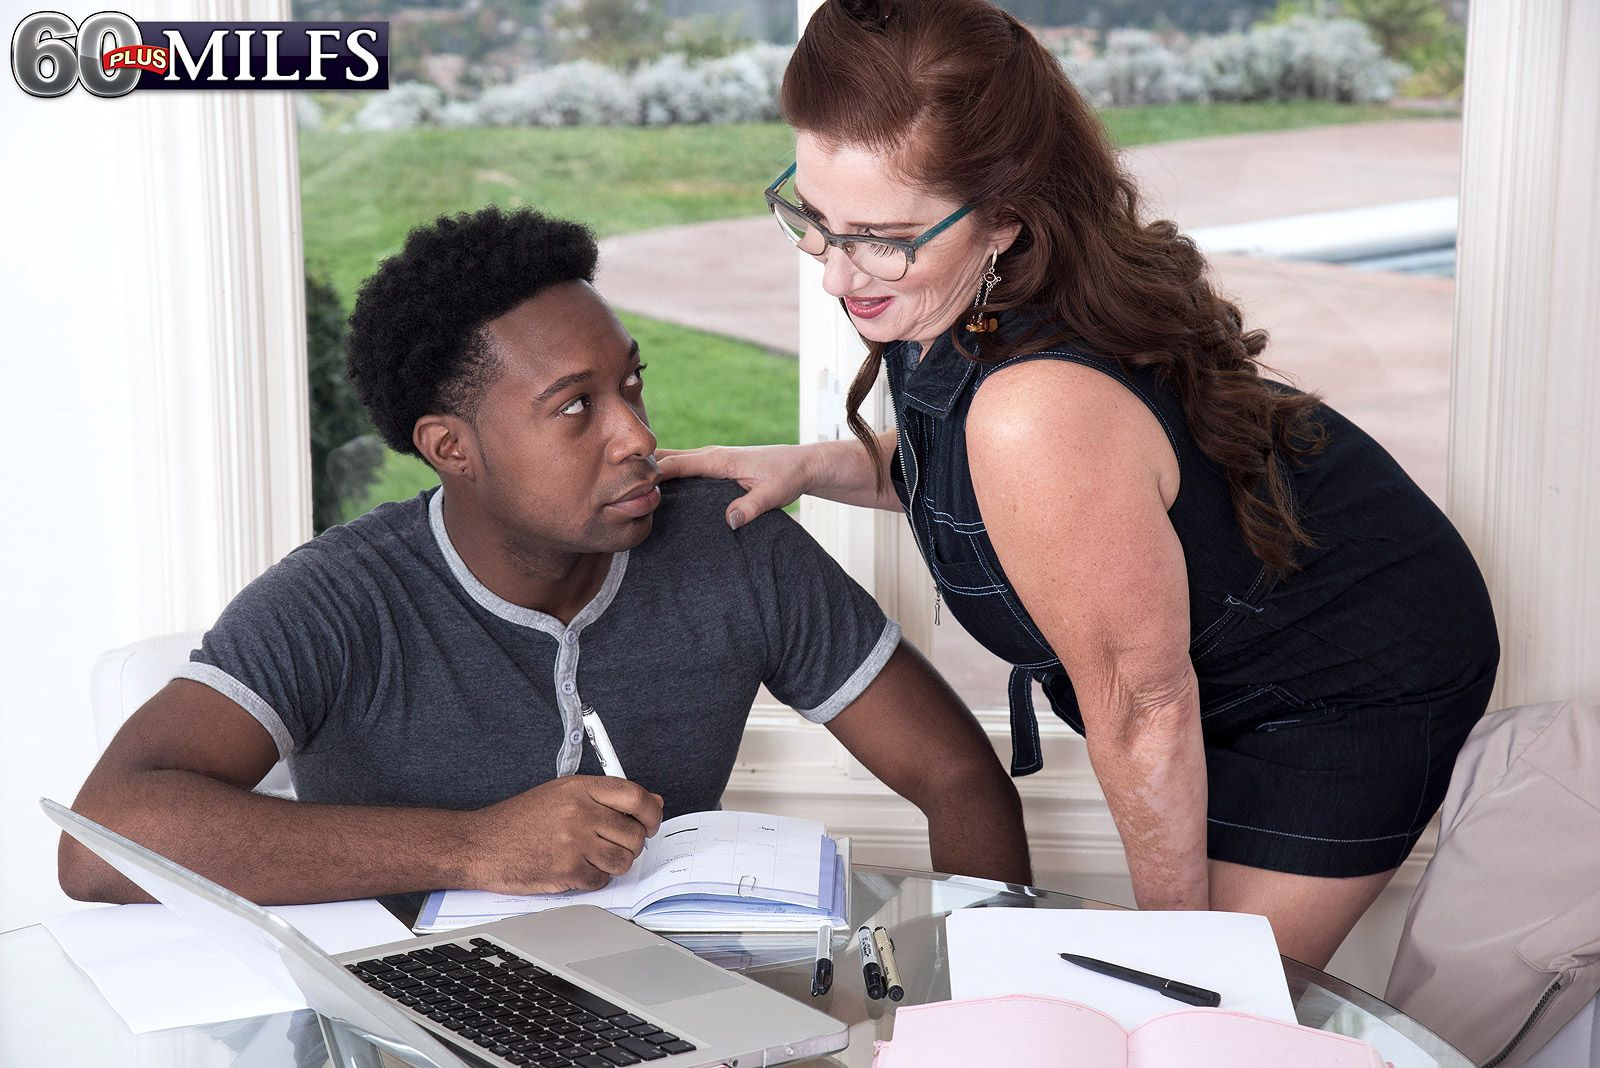 Over 60 MILF Maria Fawndeli seduces a younger black man in her home office